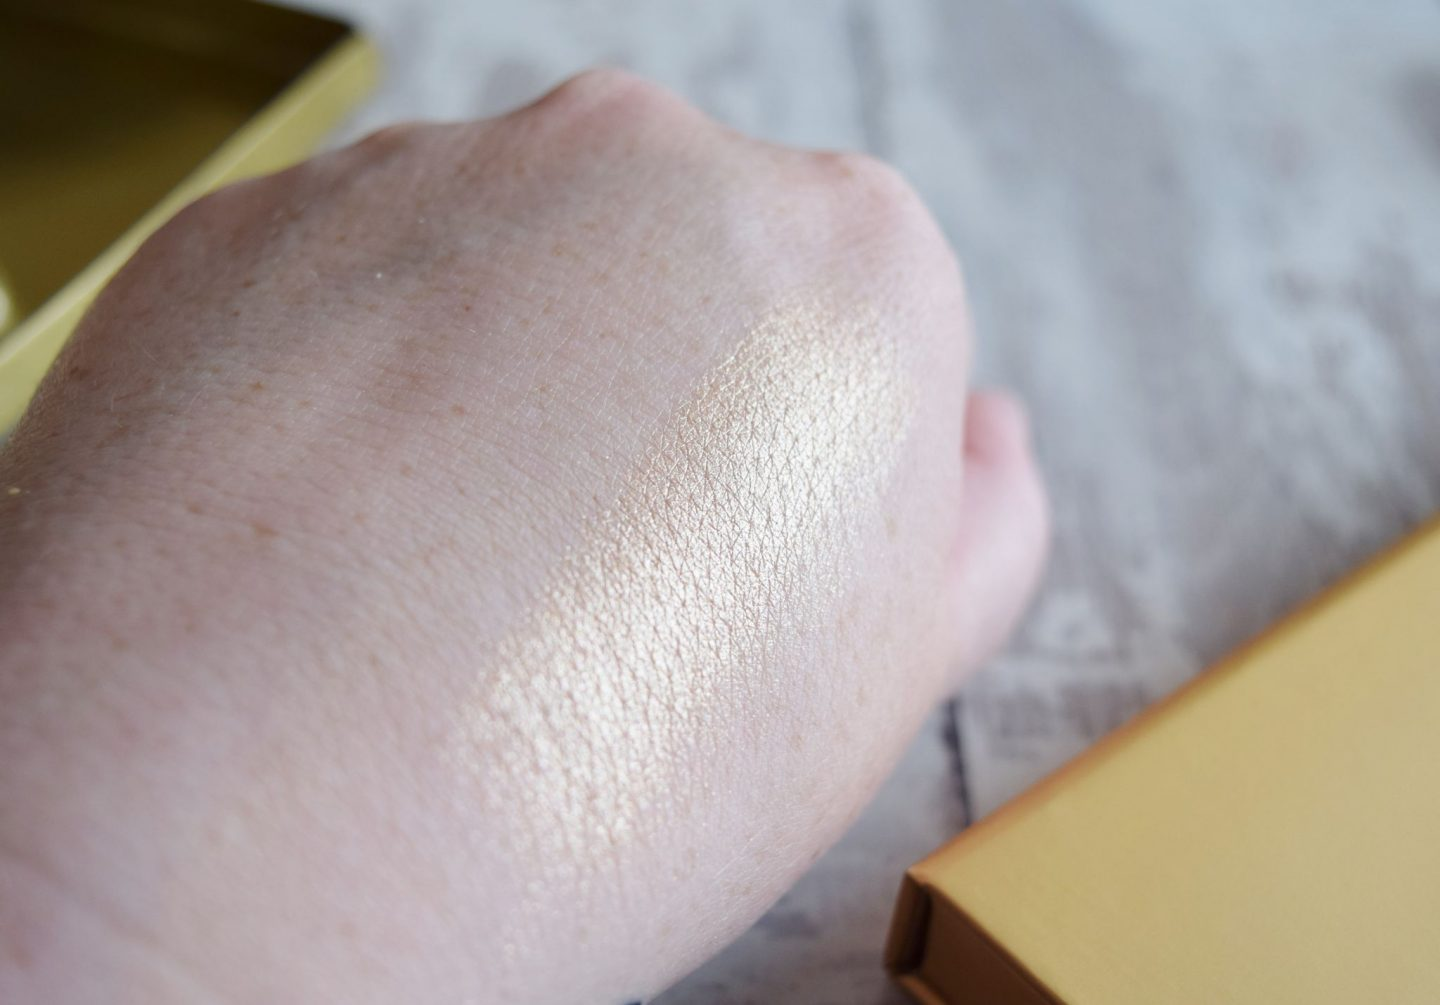 Laura Geller Beauty Baked Gelato Swirl Illuminator in Gilded Honey swatch